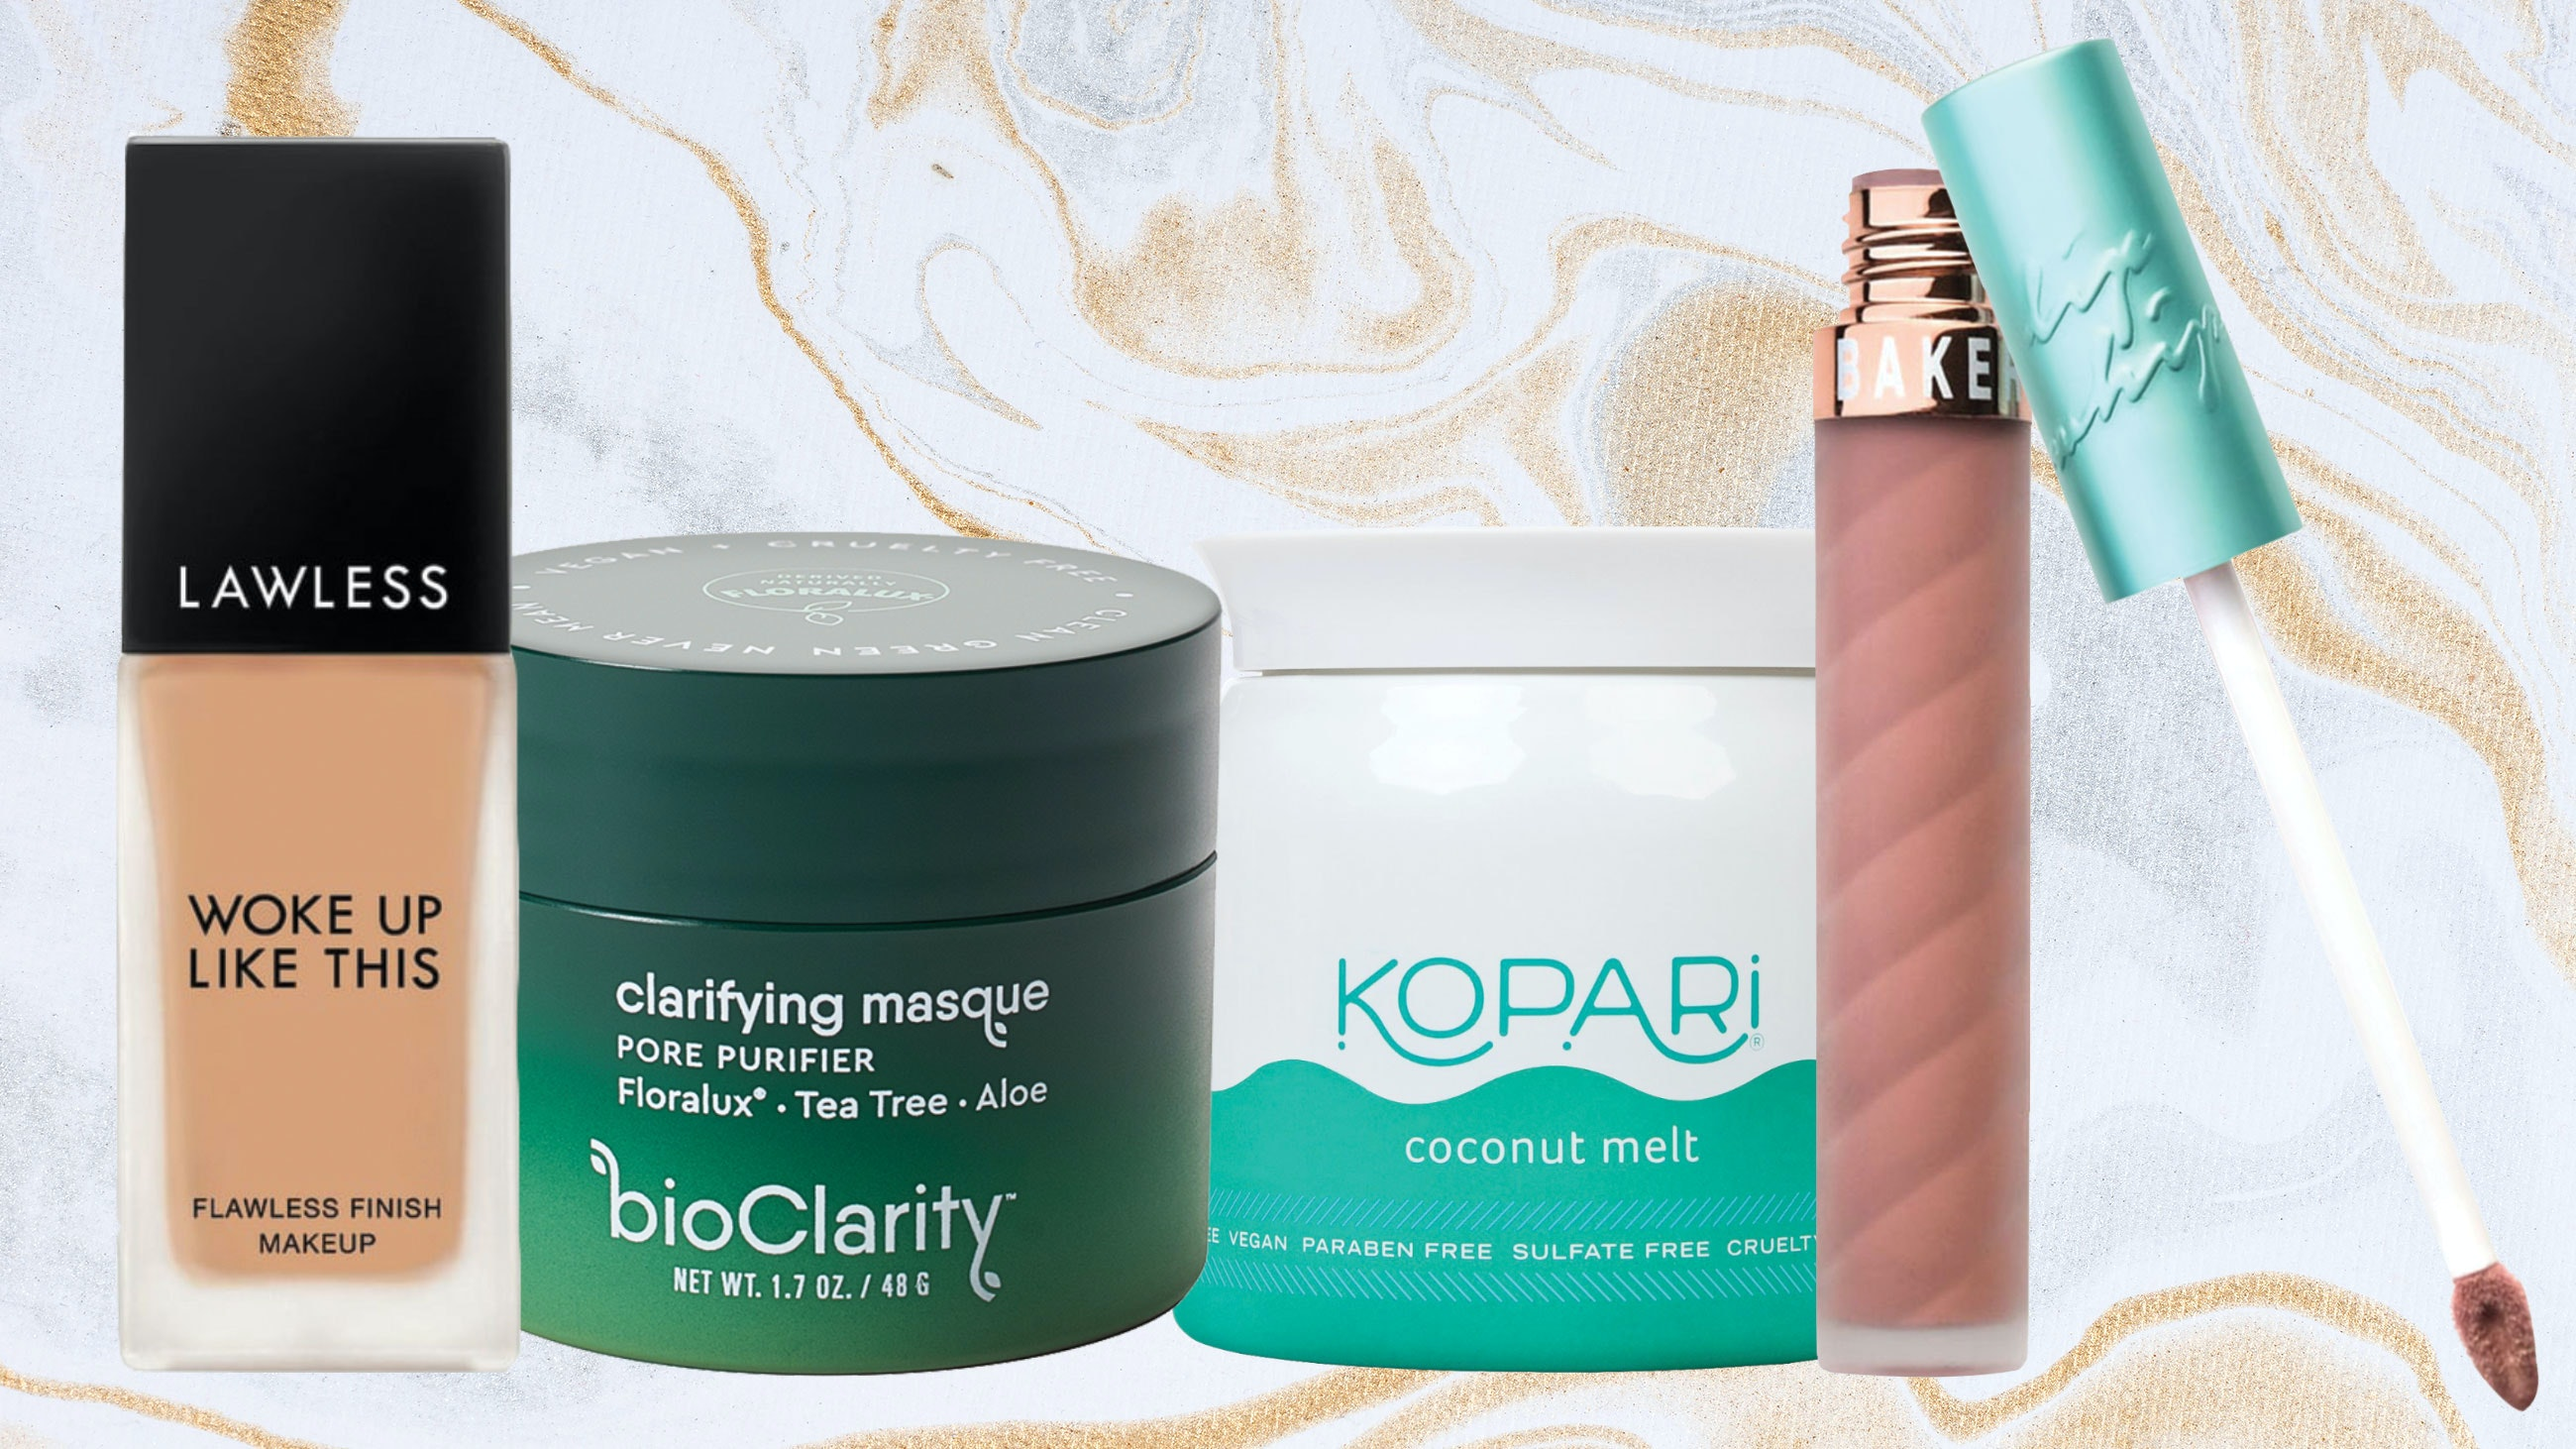 COOLA, Kopari, and More Fan-Favorite Beauty Brands With San Diegan Roots